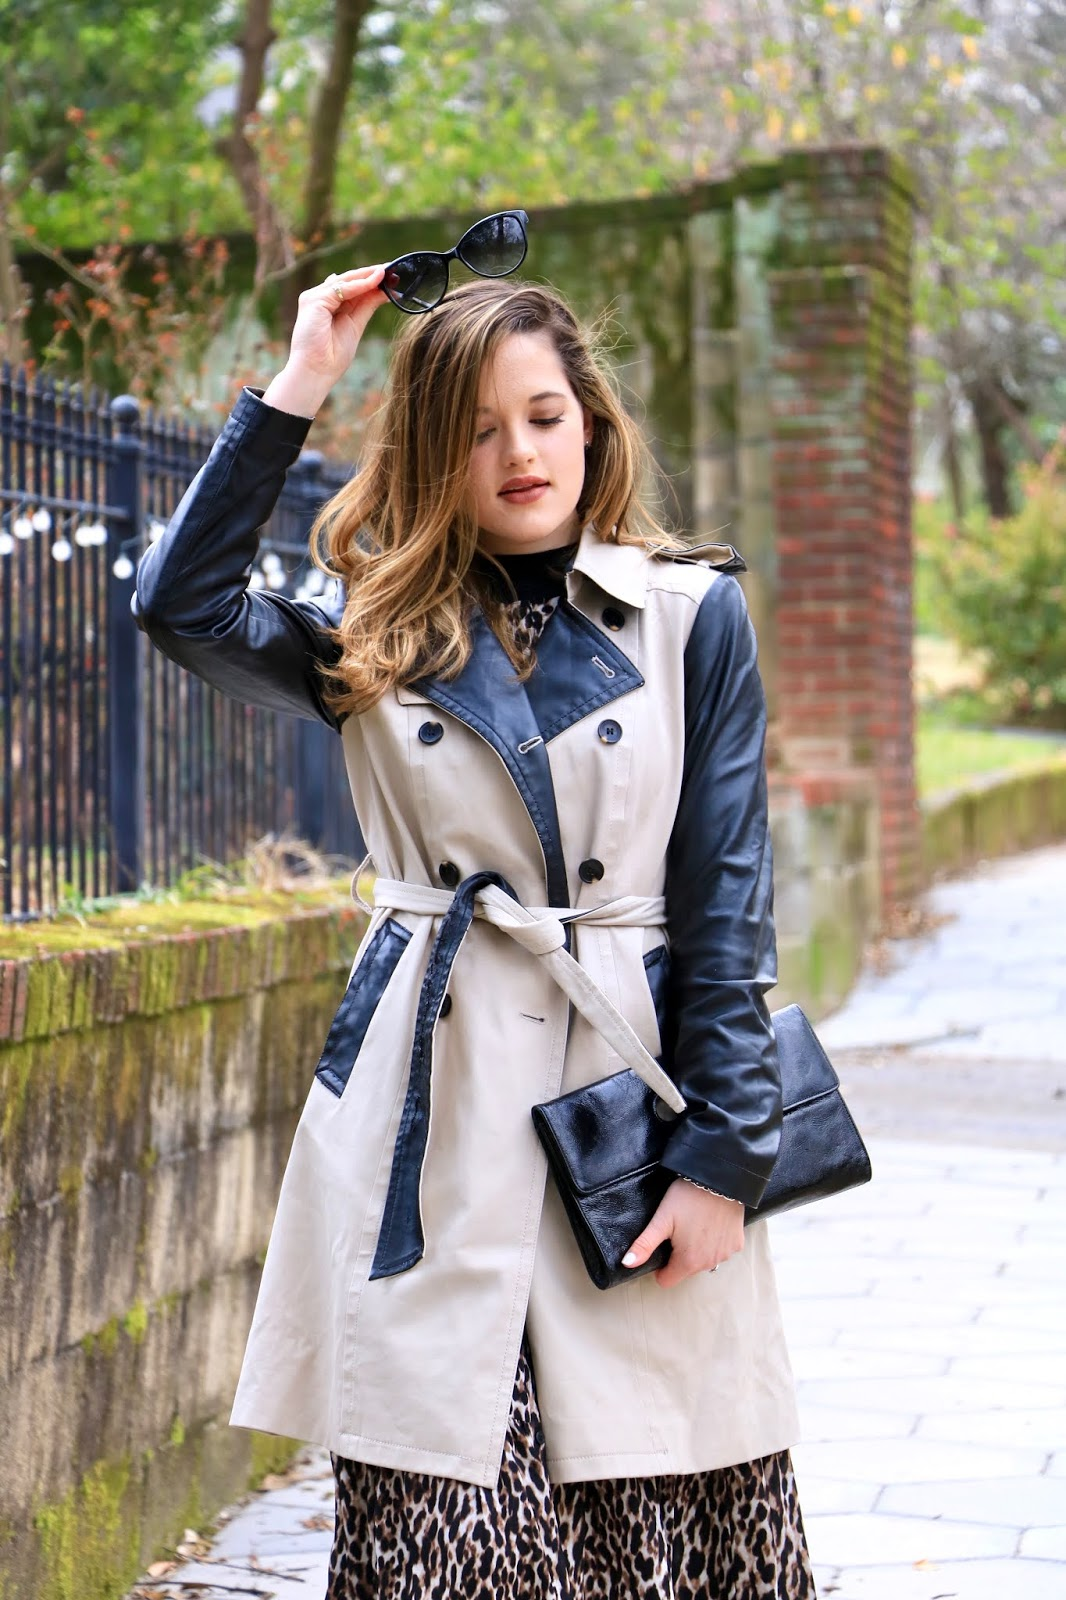 Nyc fashion blogger Kathleen Harper wearing an Ann Taylor trench coat with leather sleeves.